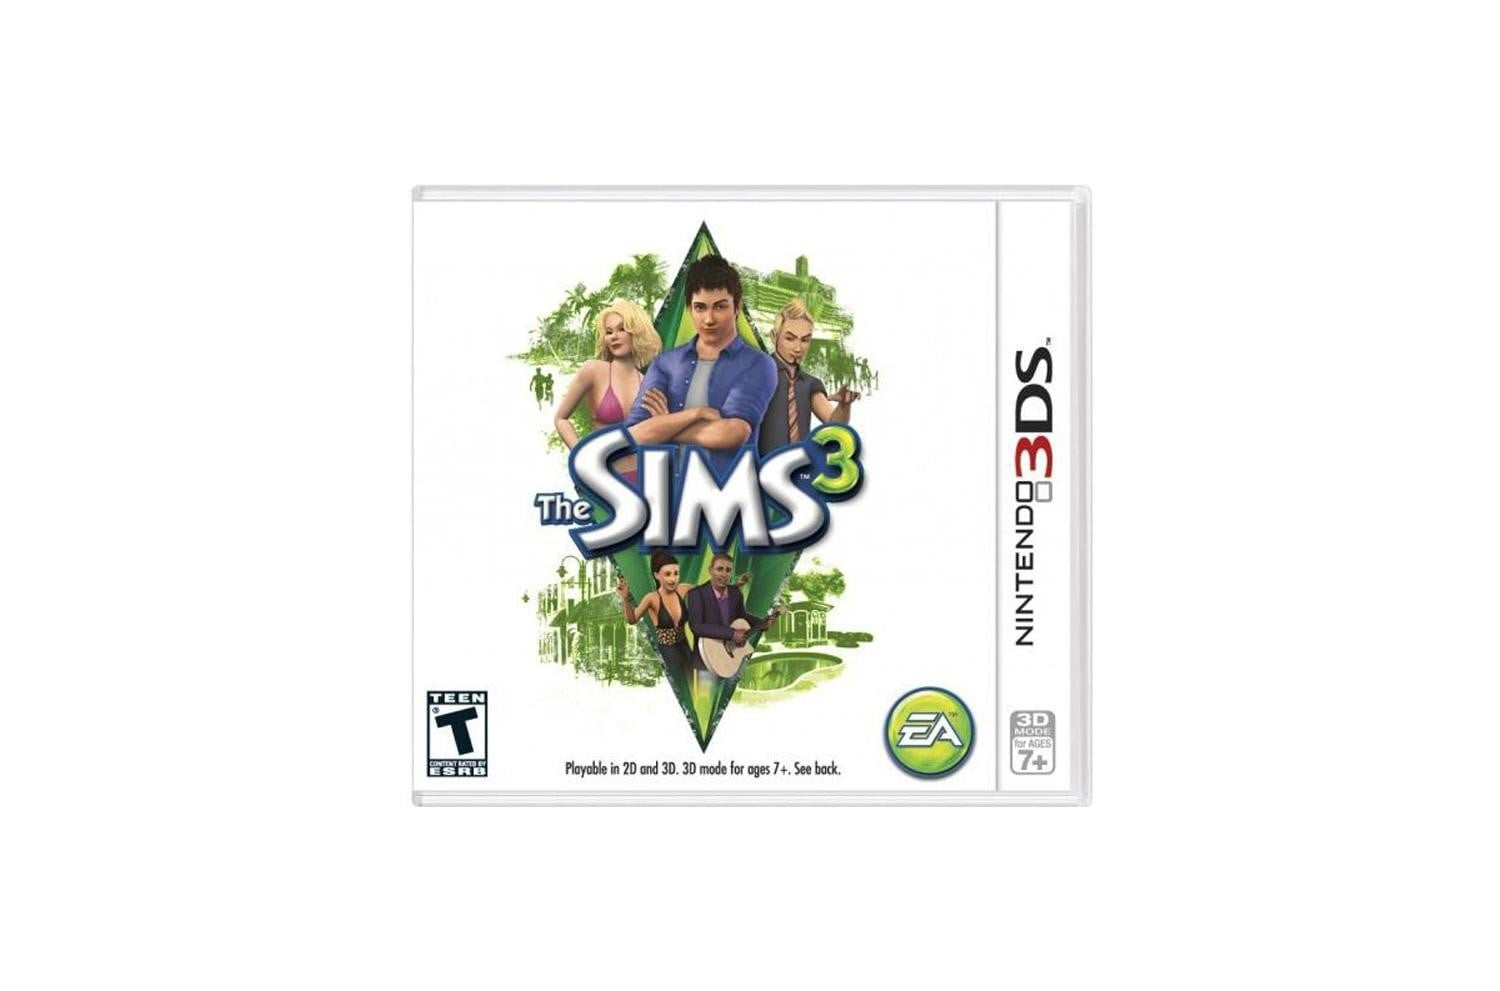 The-Sims-3-on-3DS-cover-art